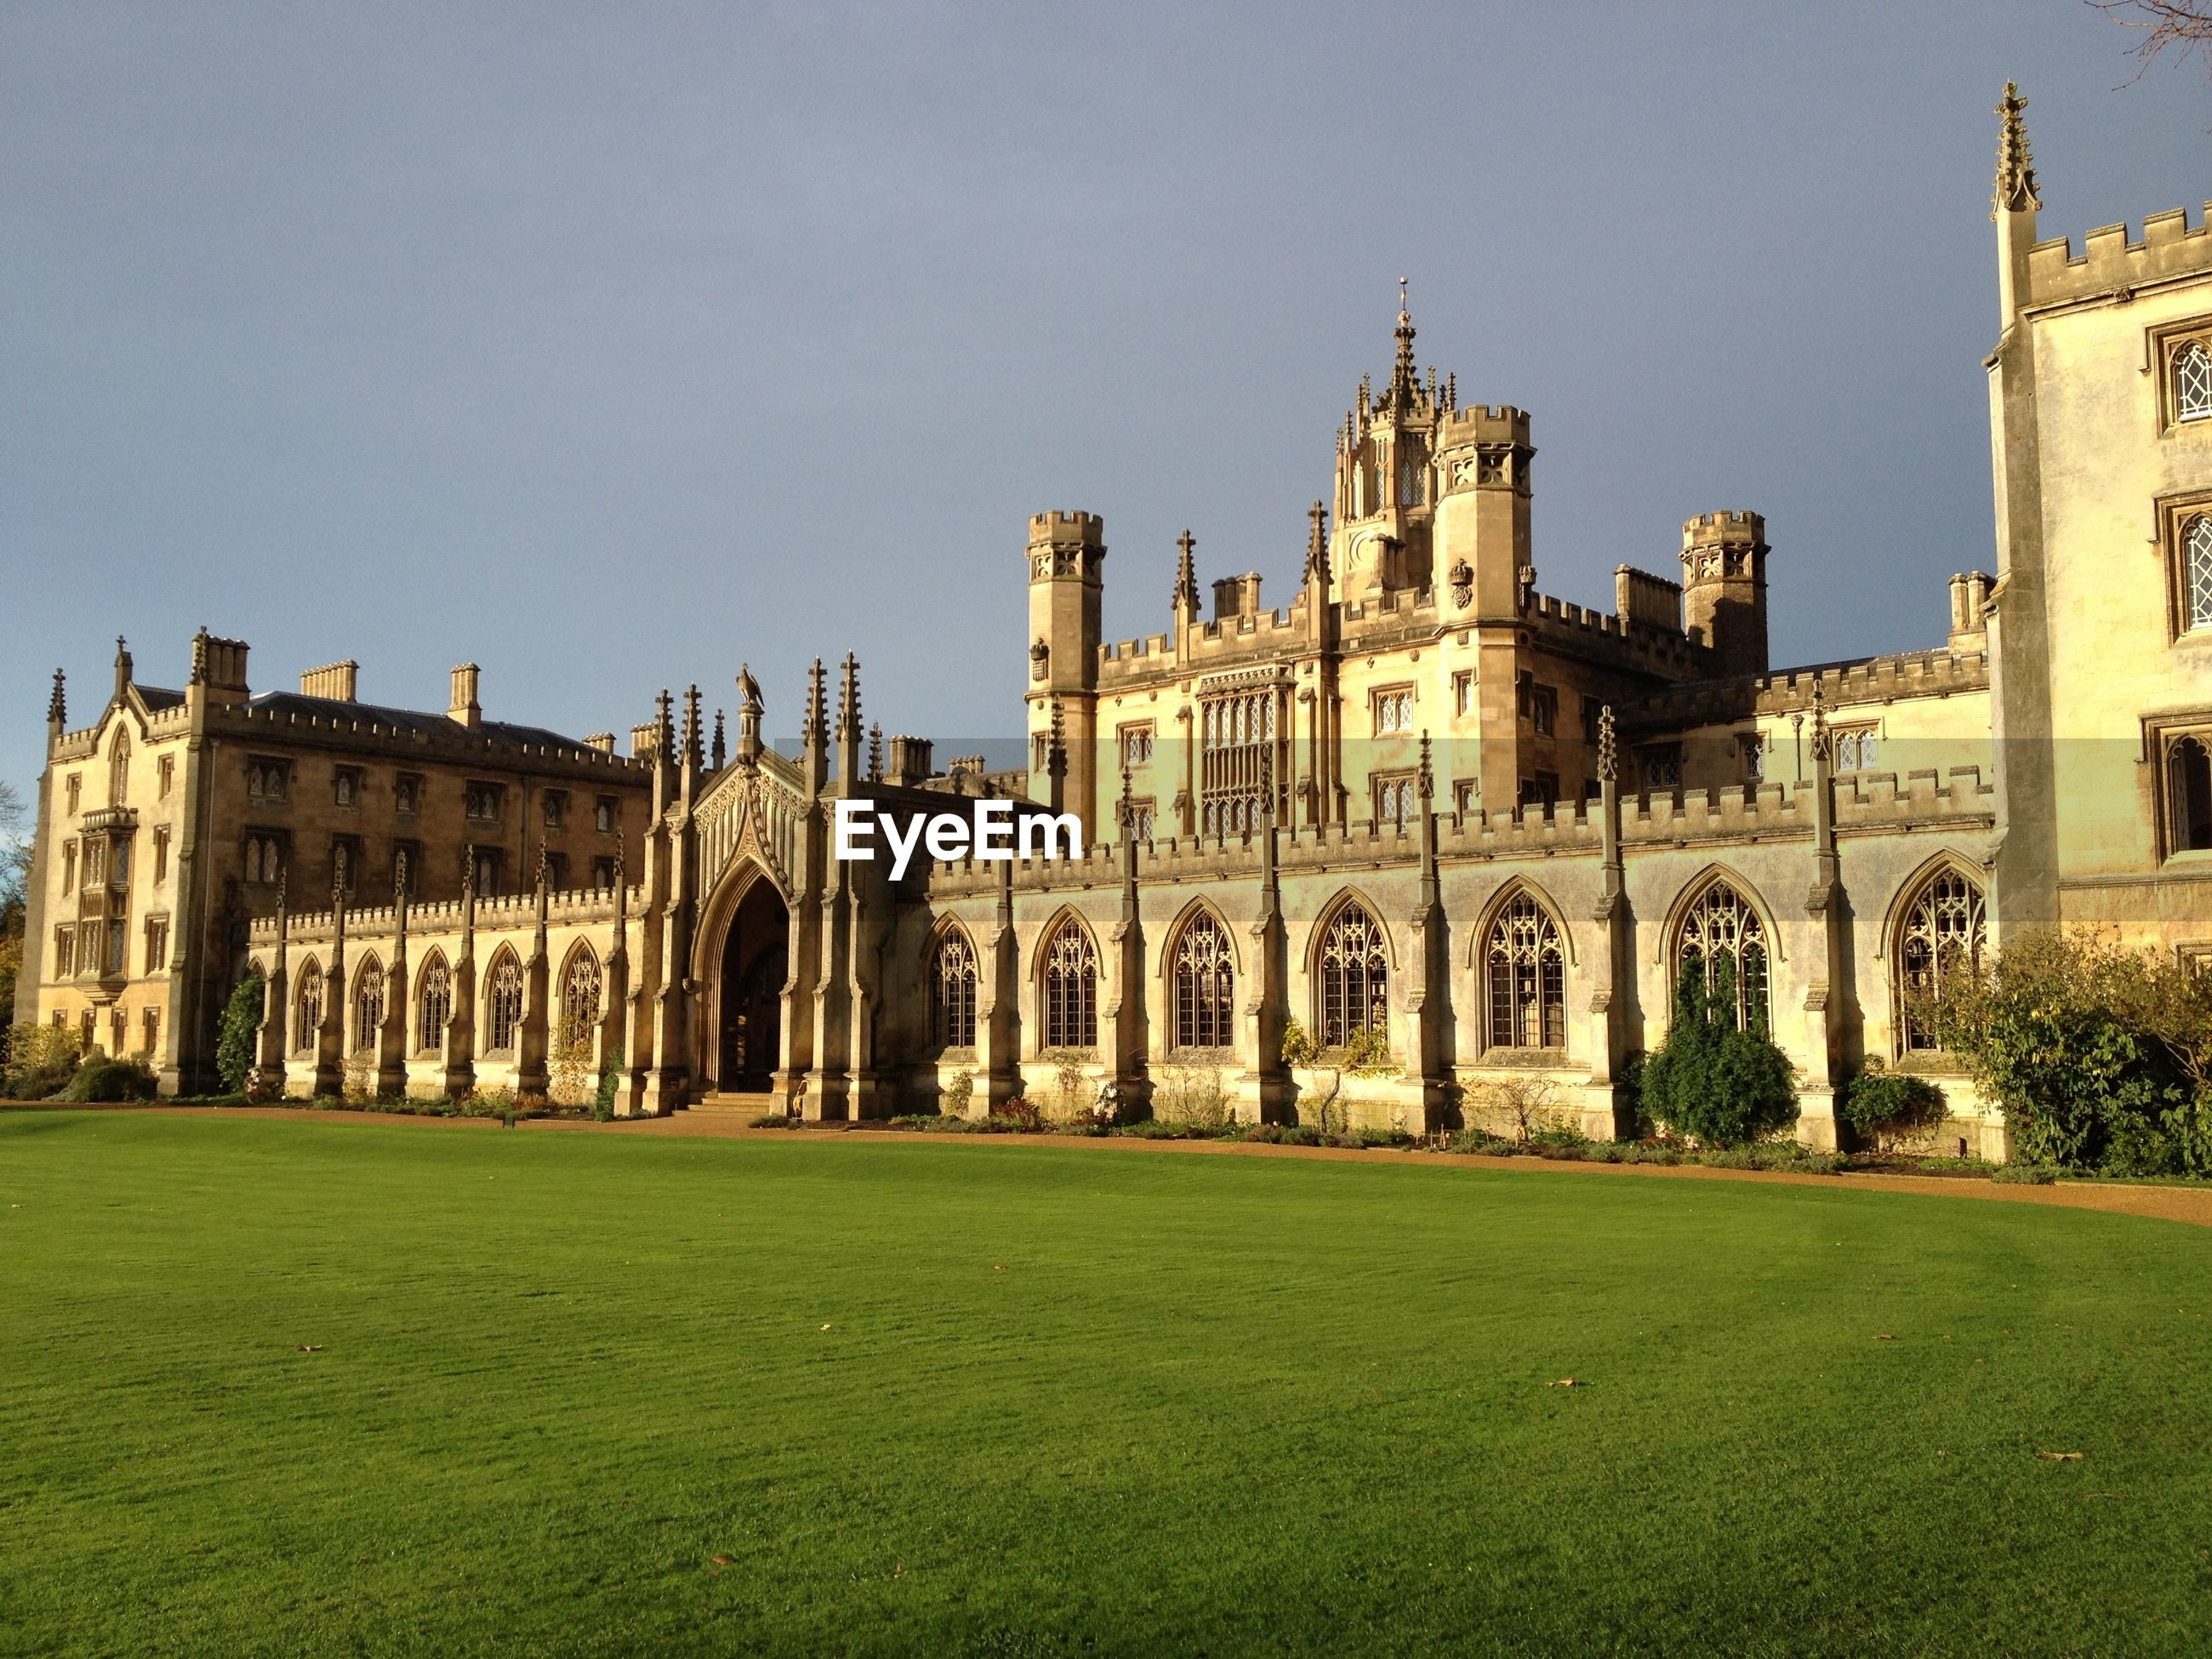 Exterior of st john college against clear sky